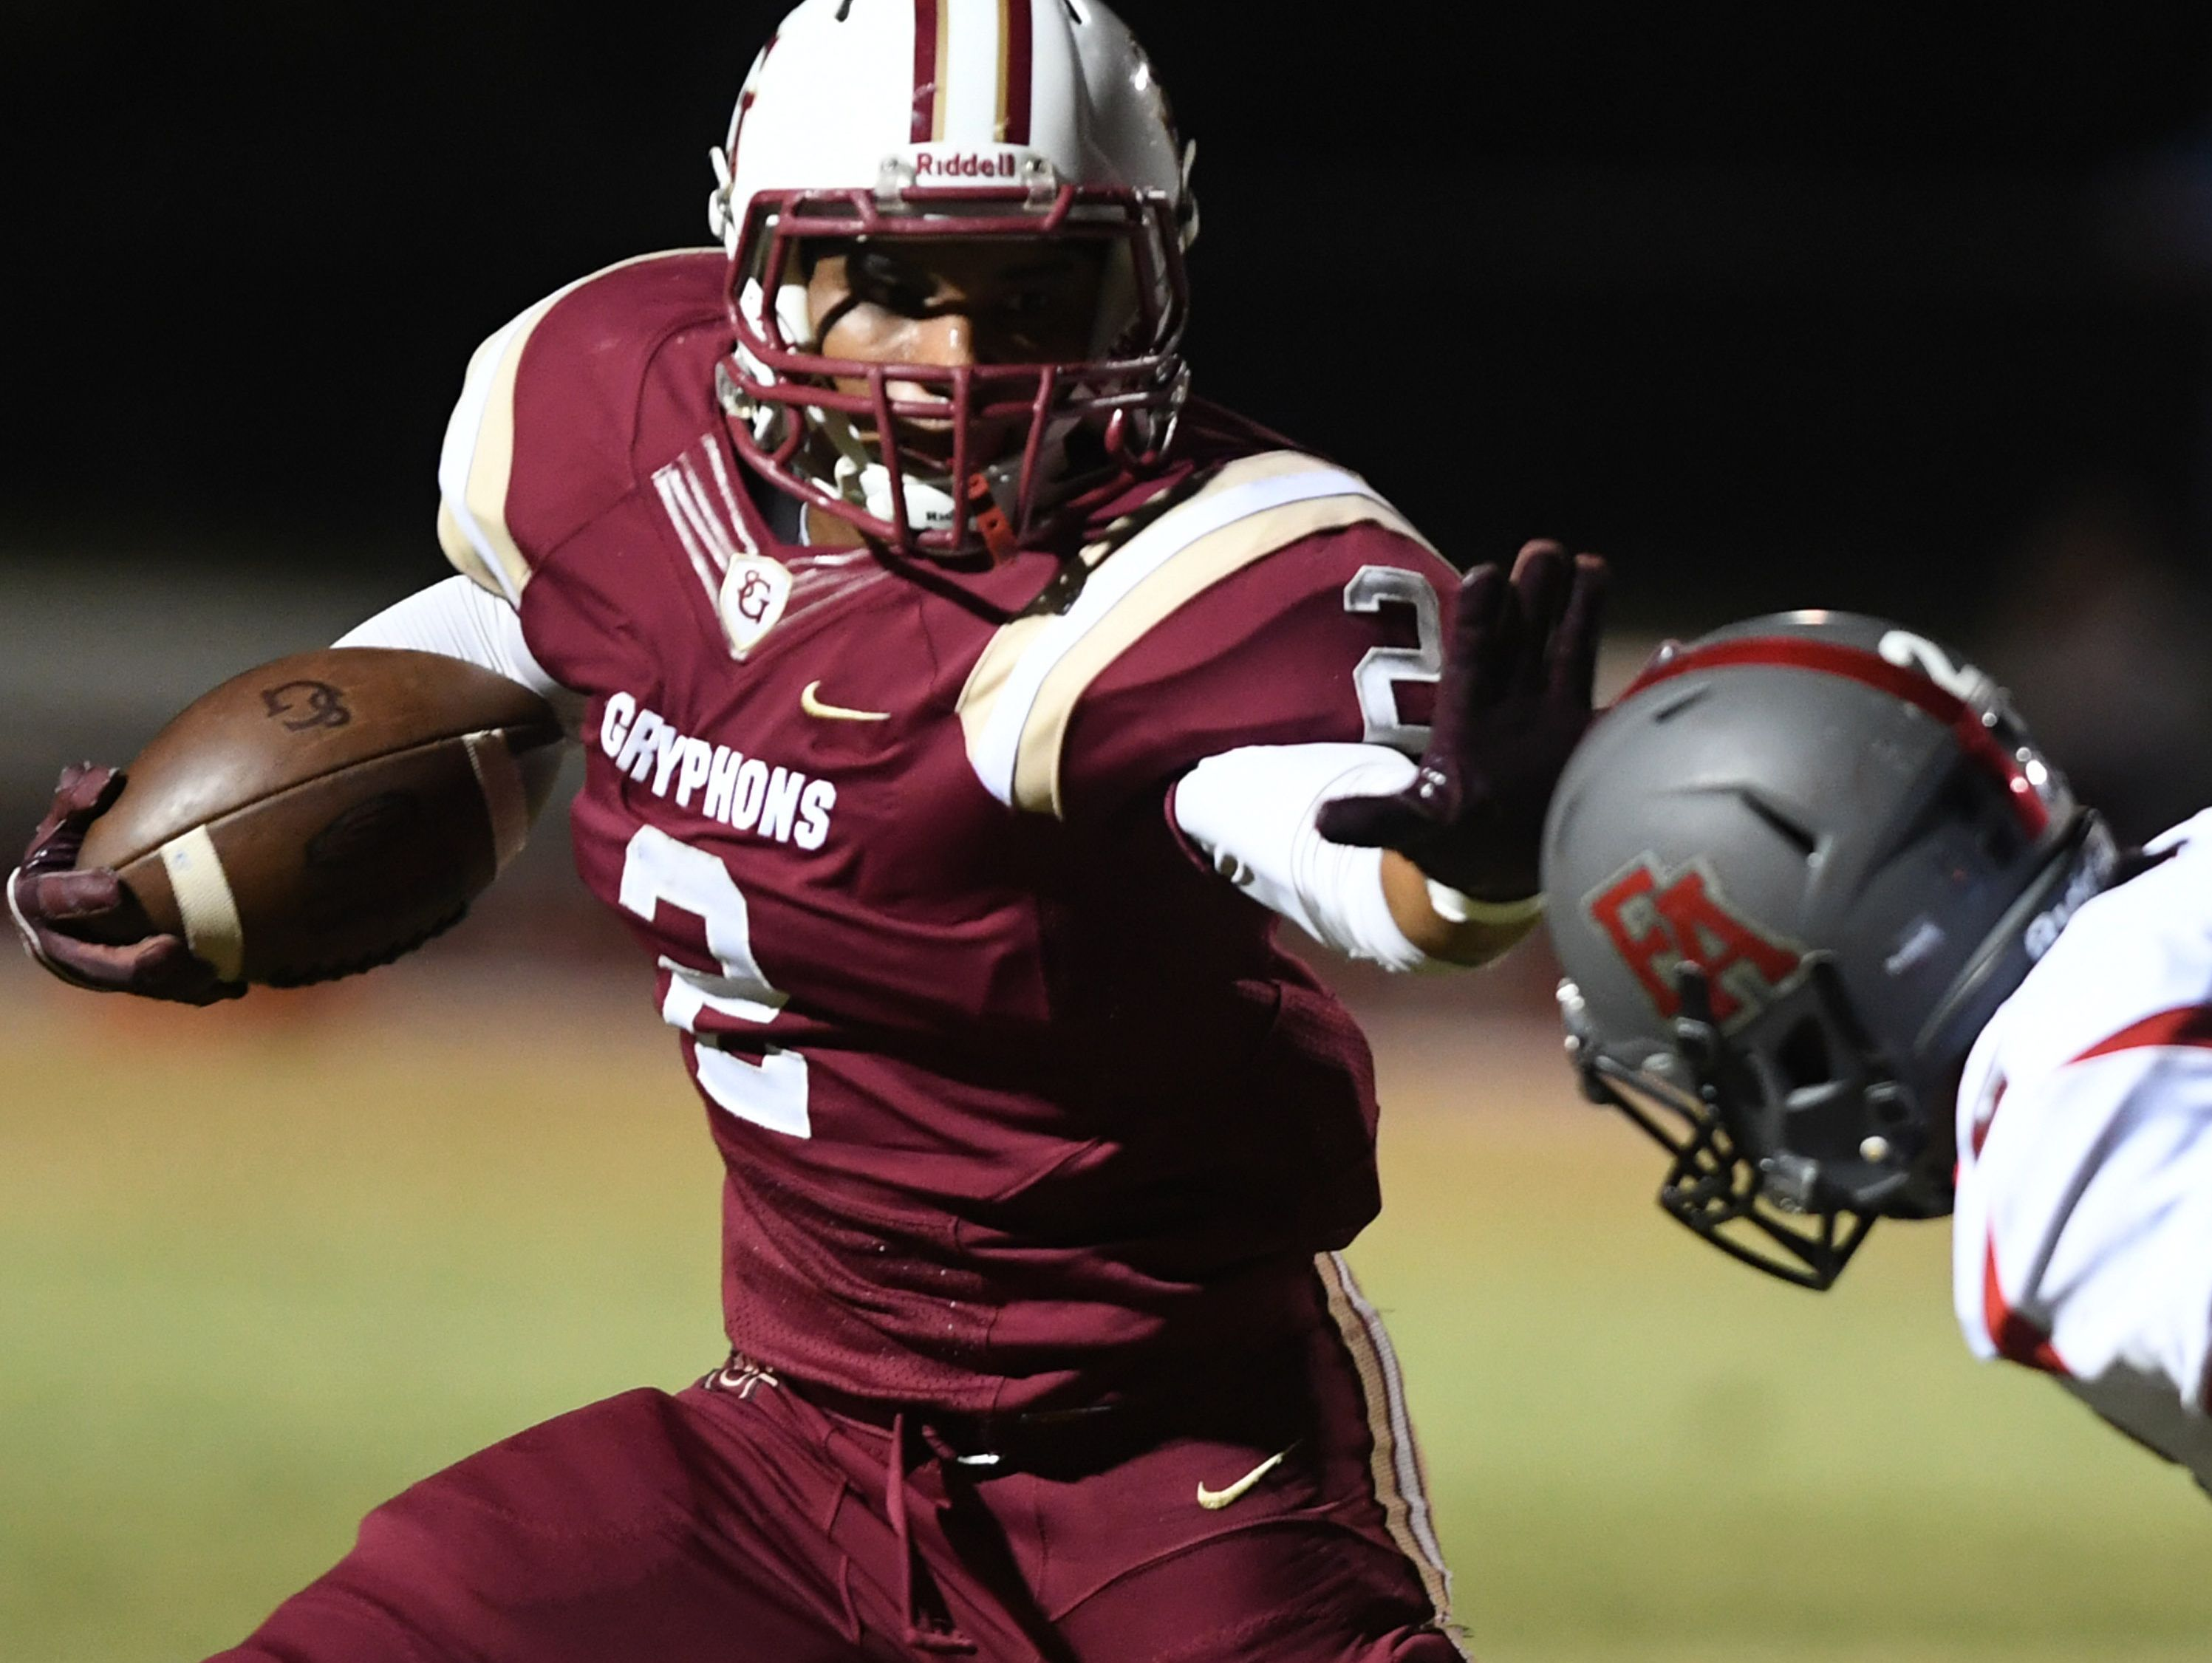 St. George's running back Chase Hayden is among several area stars named semifinalists for the Mr. Football awards.